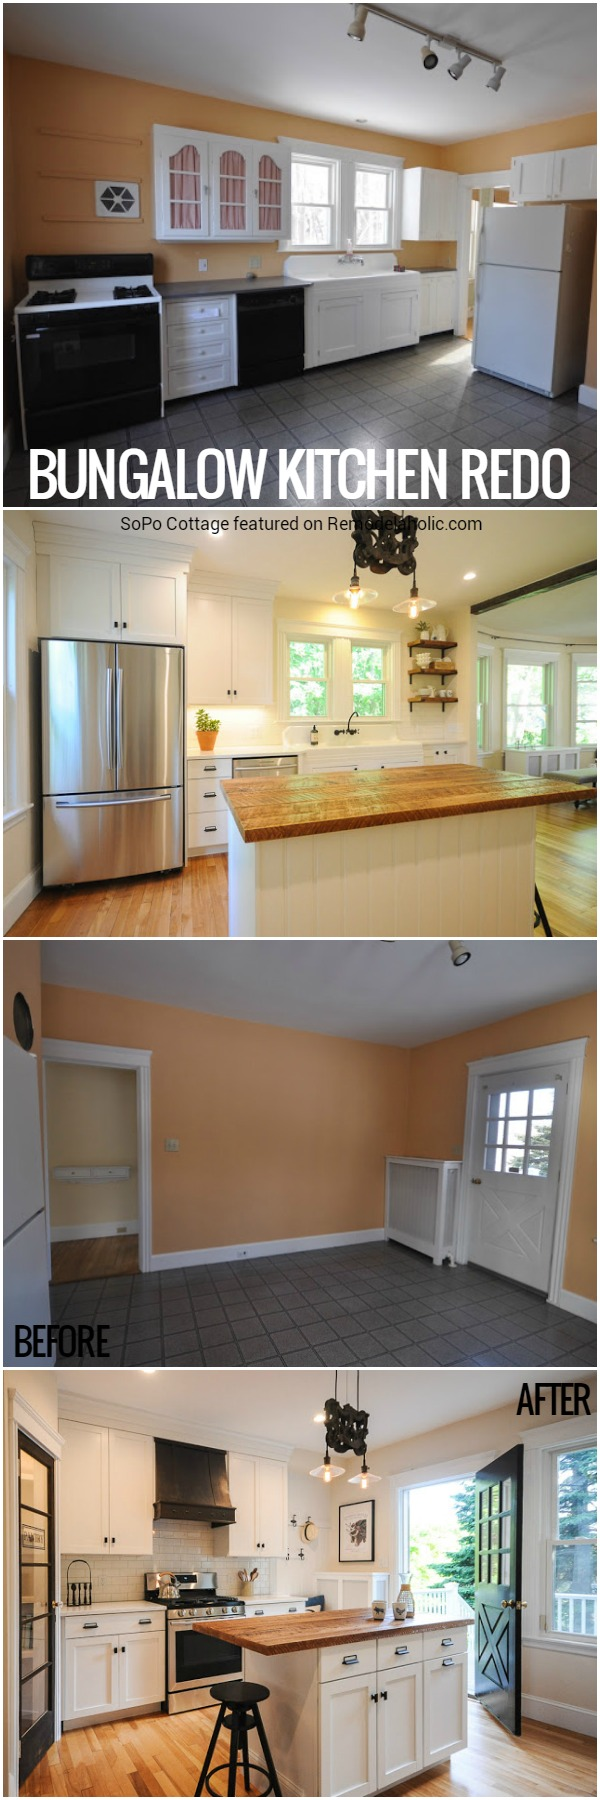 Remodelaholic Modernized Bungalow Kitchen Renovation With Reclaimed Wood Countertop